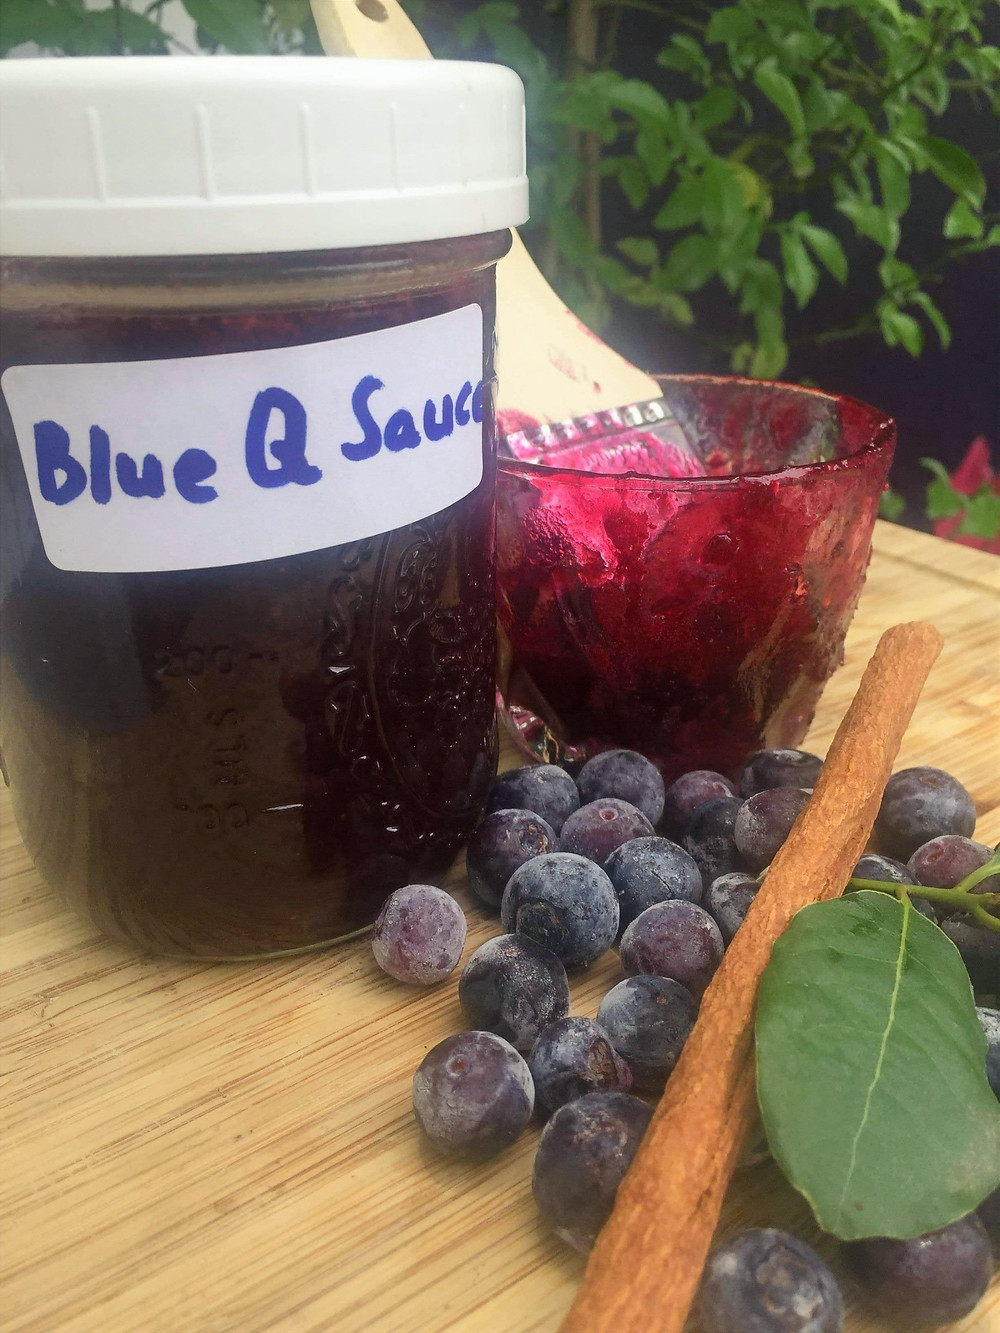 Jar of blueberry barbecue sauce with blueberries and a cinnamon stick on the side